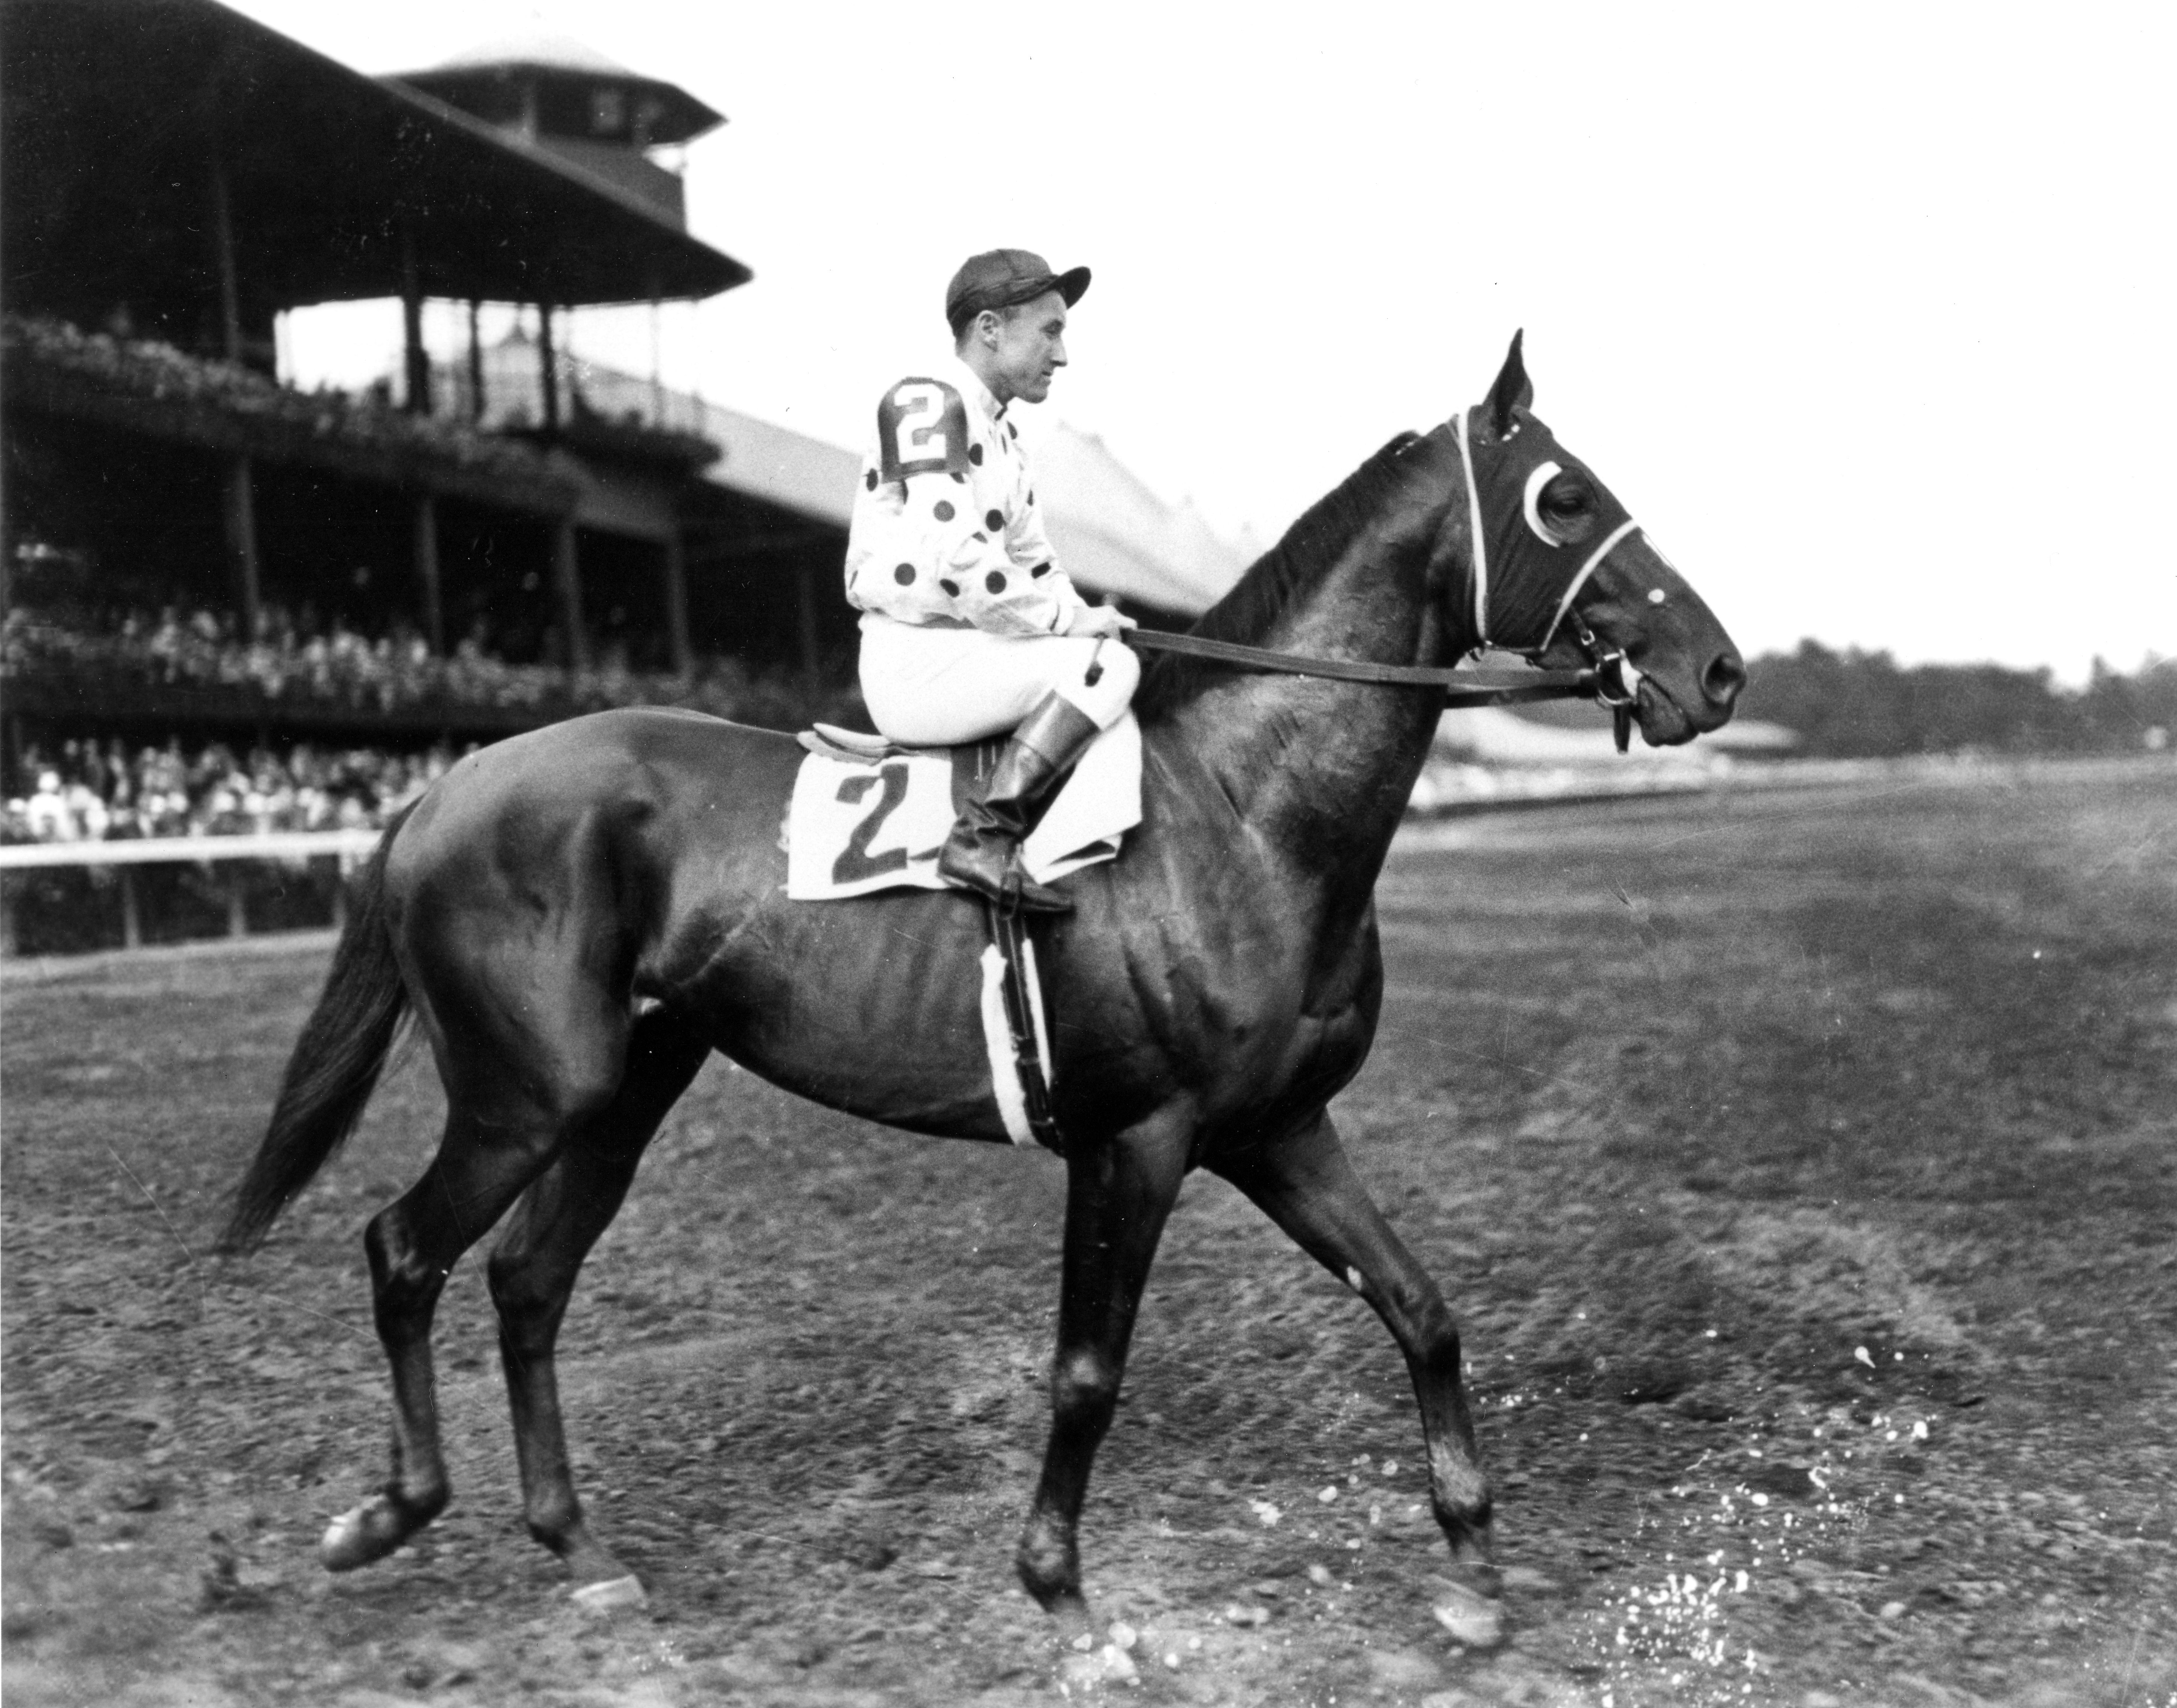 Granville with James Stout up at Saratoga, 1936 (Keeneland Library Cook Collection/Museum Collection)